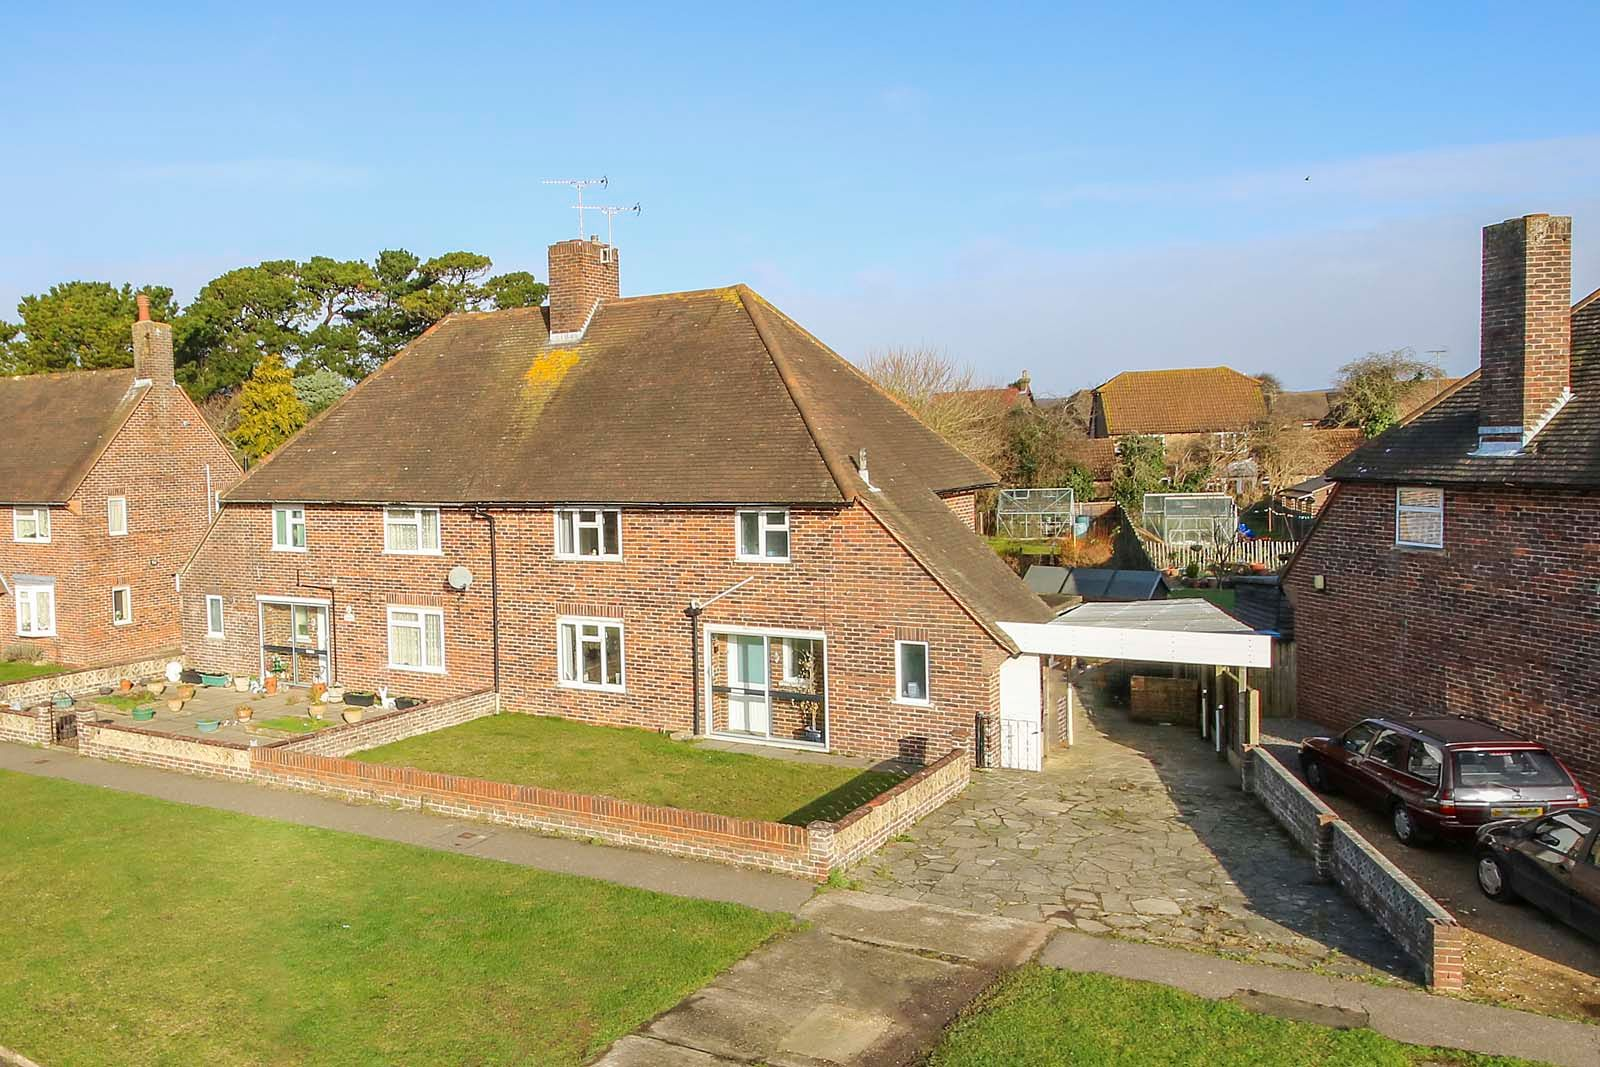 3 bed House to rent in Yapton, Arundel - Property Image 1